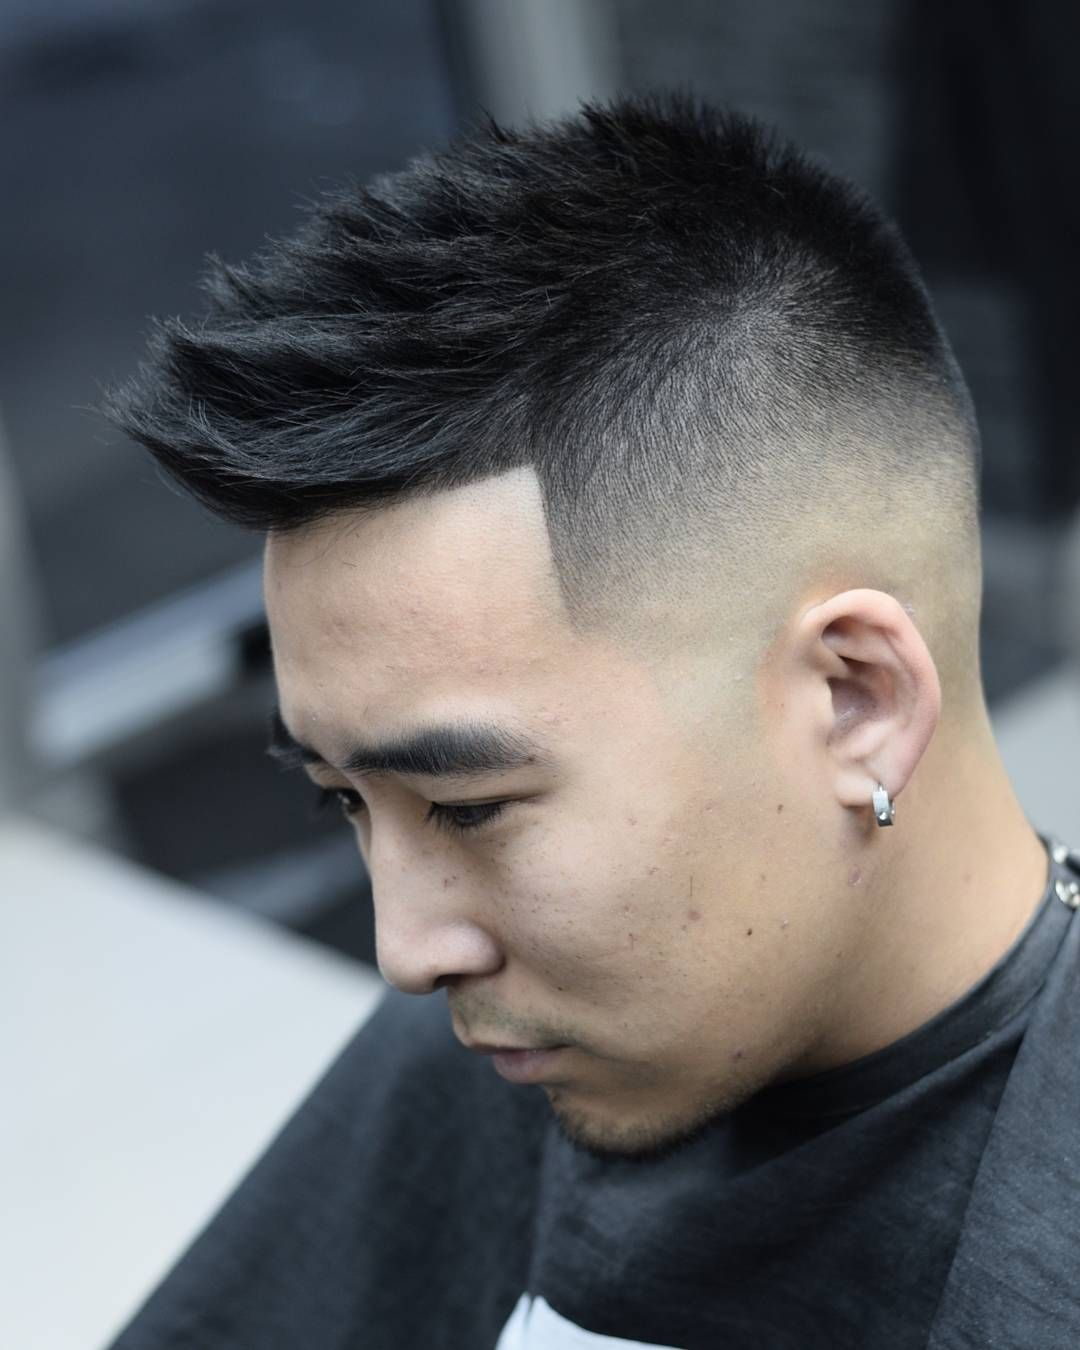 Best Hairstyles for Asian Men | Asian Men Hairstyles | Asian men ...